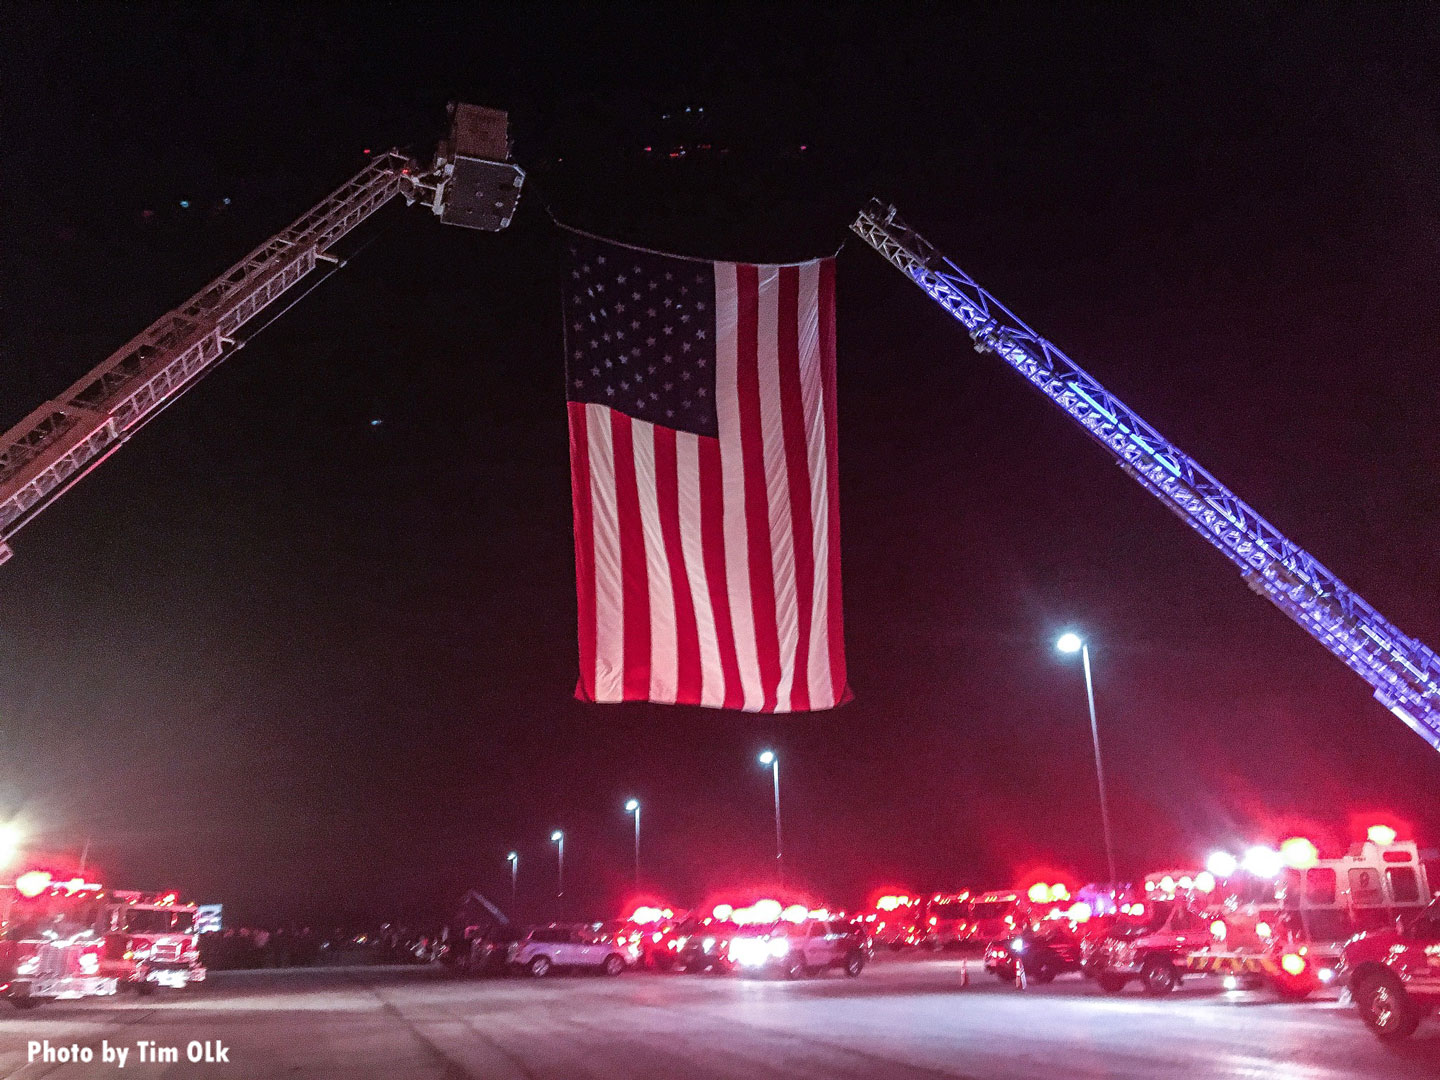 At night, a photo of the flag held between two fire apparatus